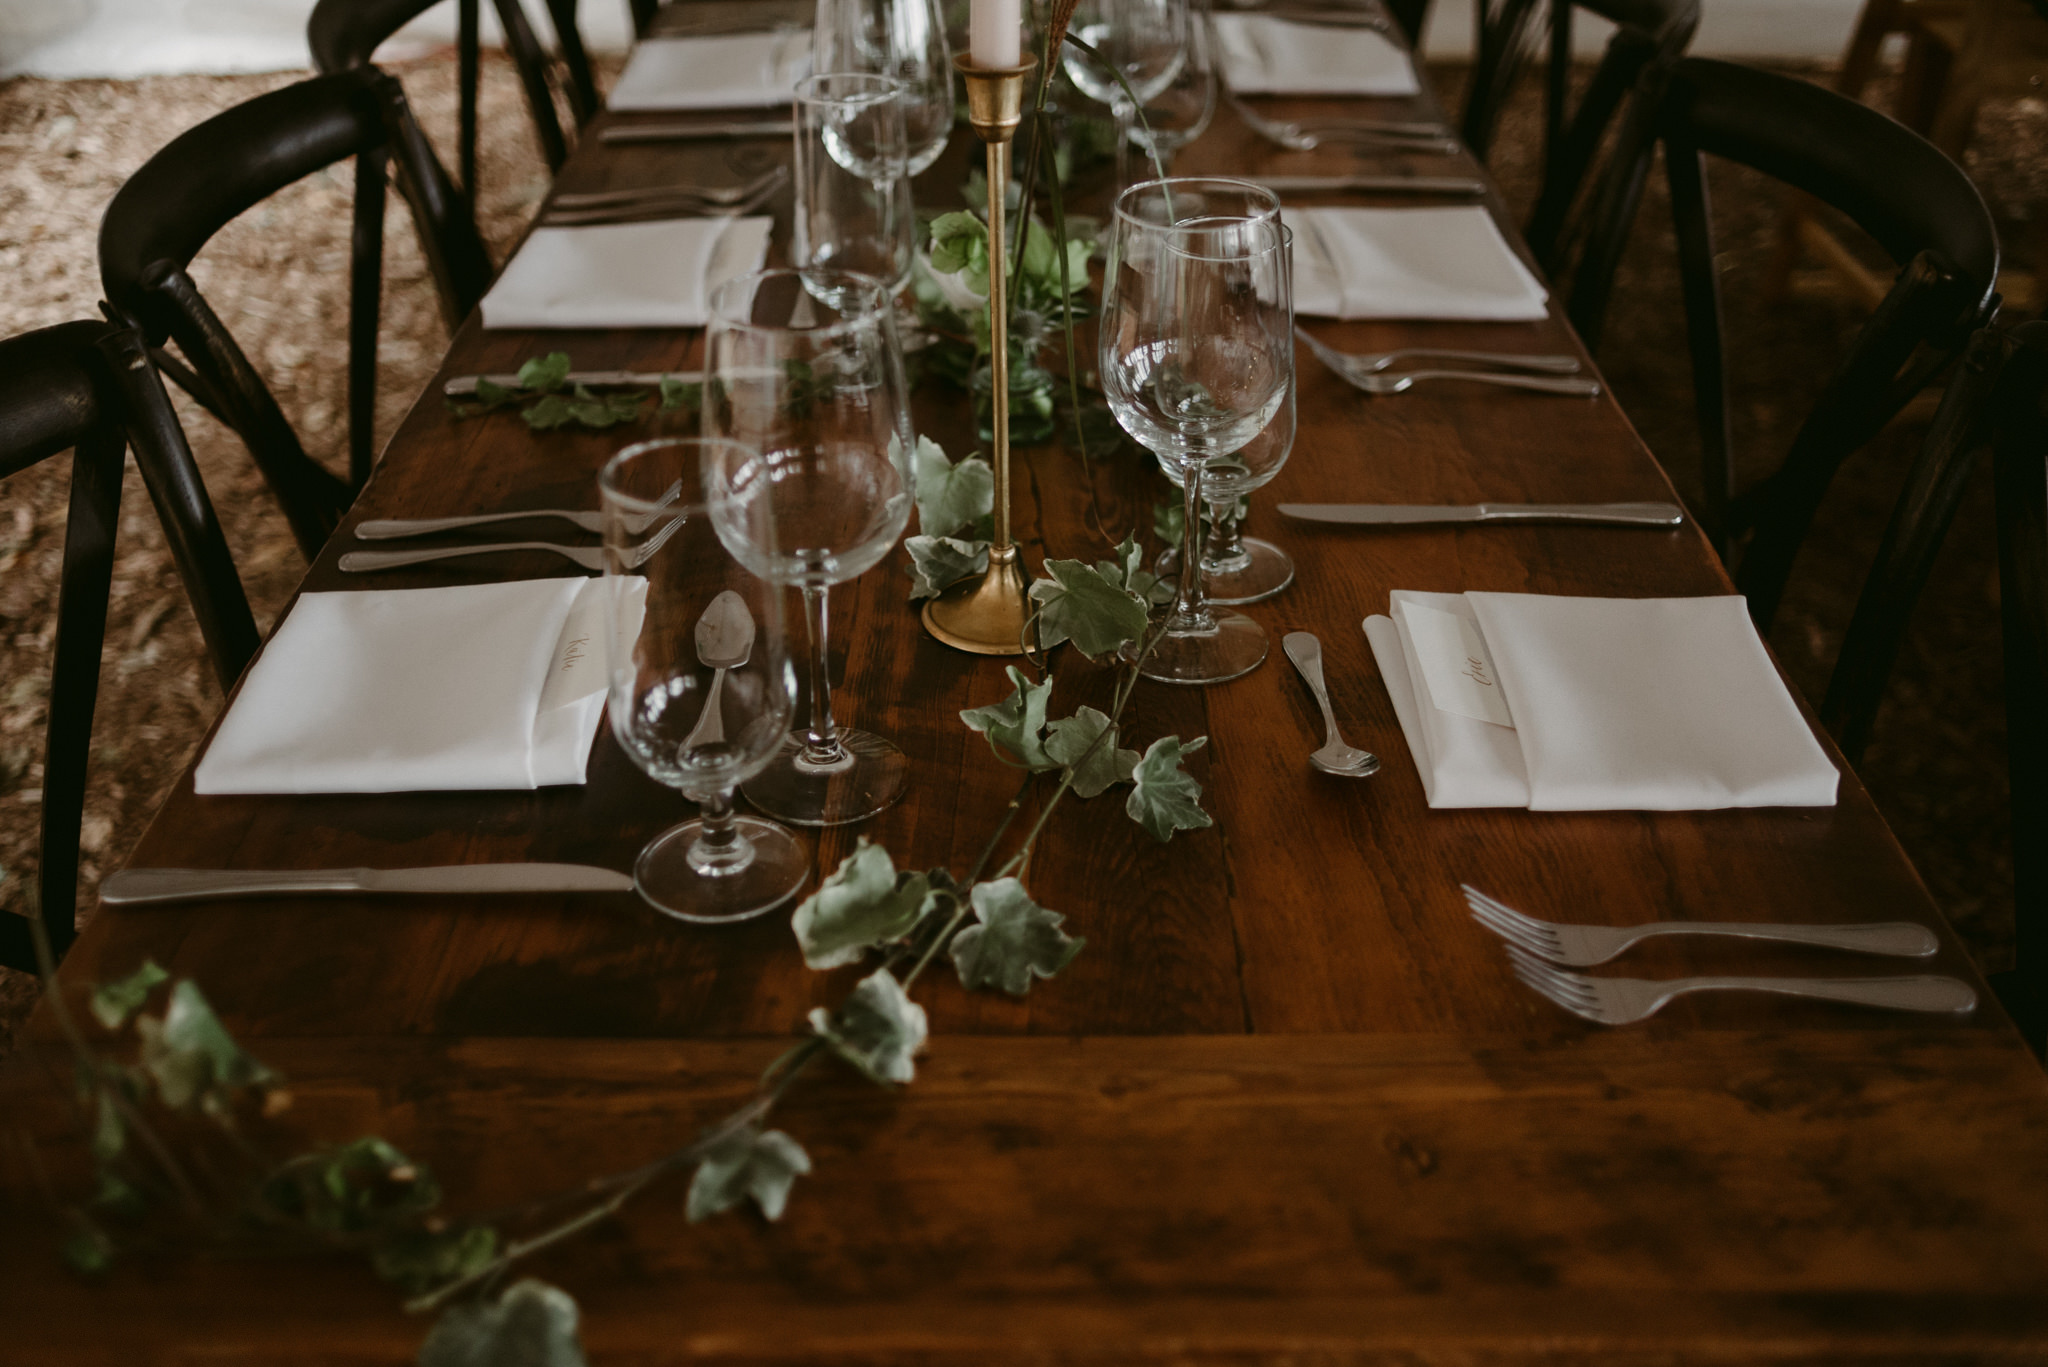 vines on table for wedding reception